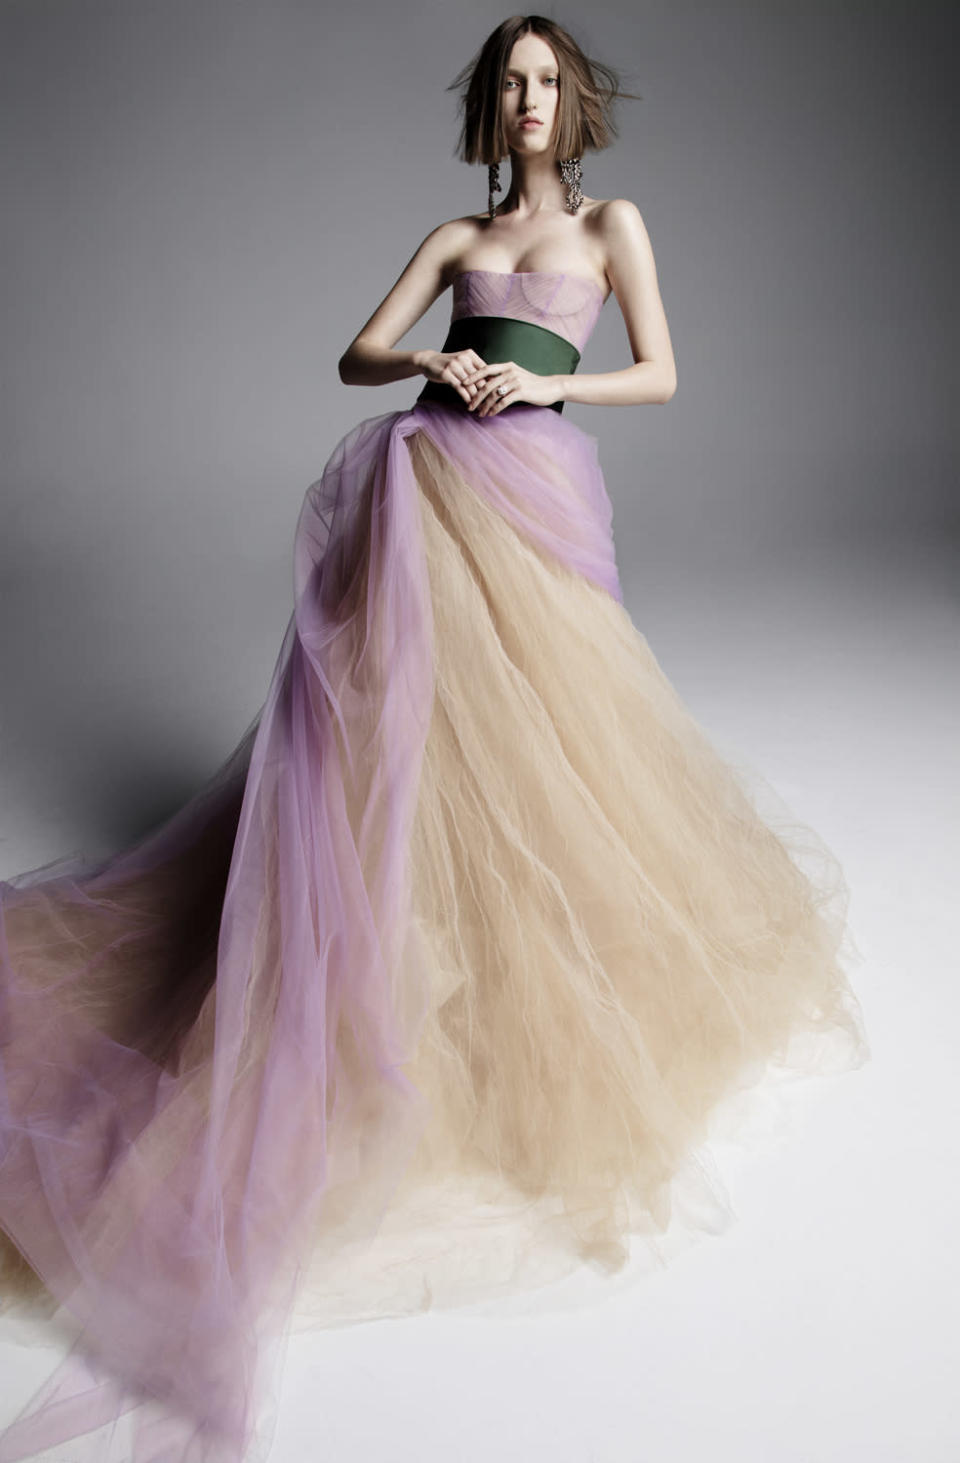 <p>Pastel purple and beige gown with green sash. (Photo: Inez & Vinoodh) </p>